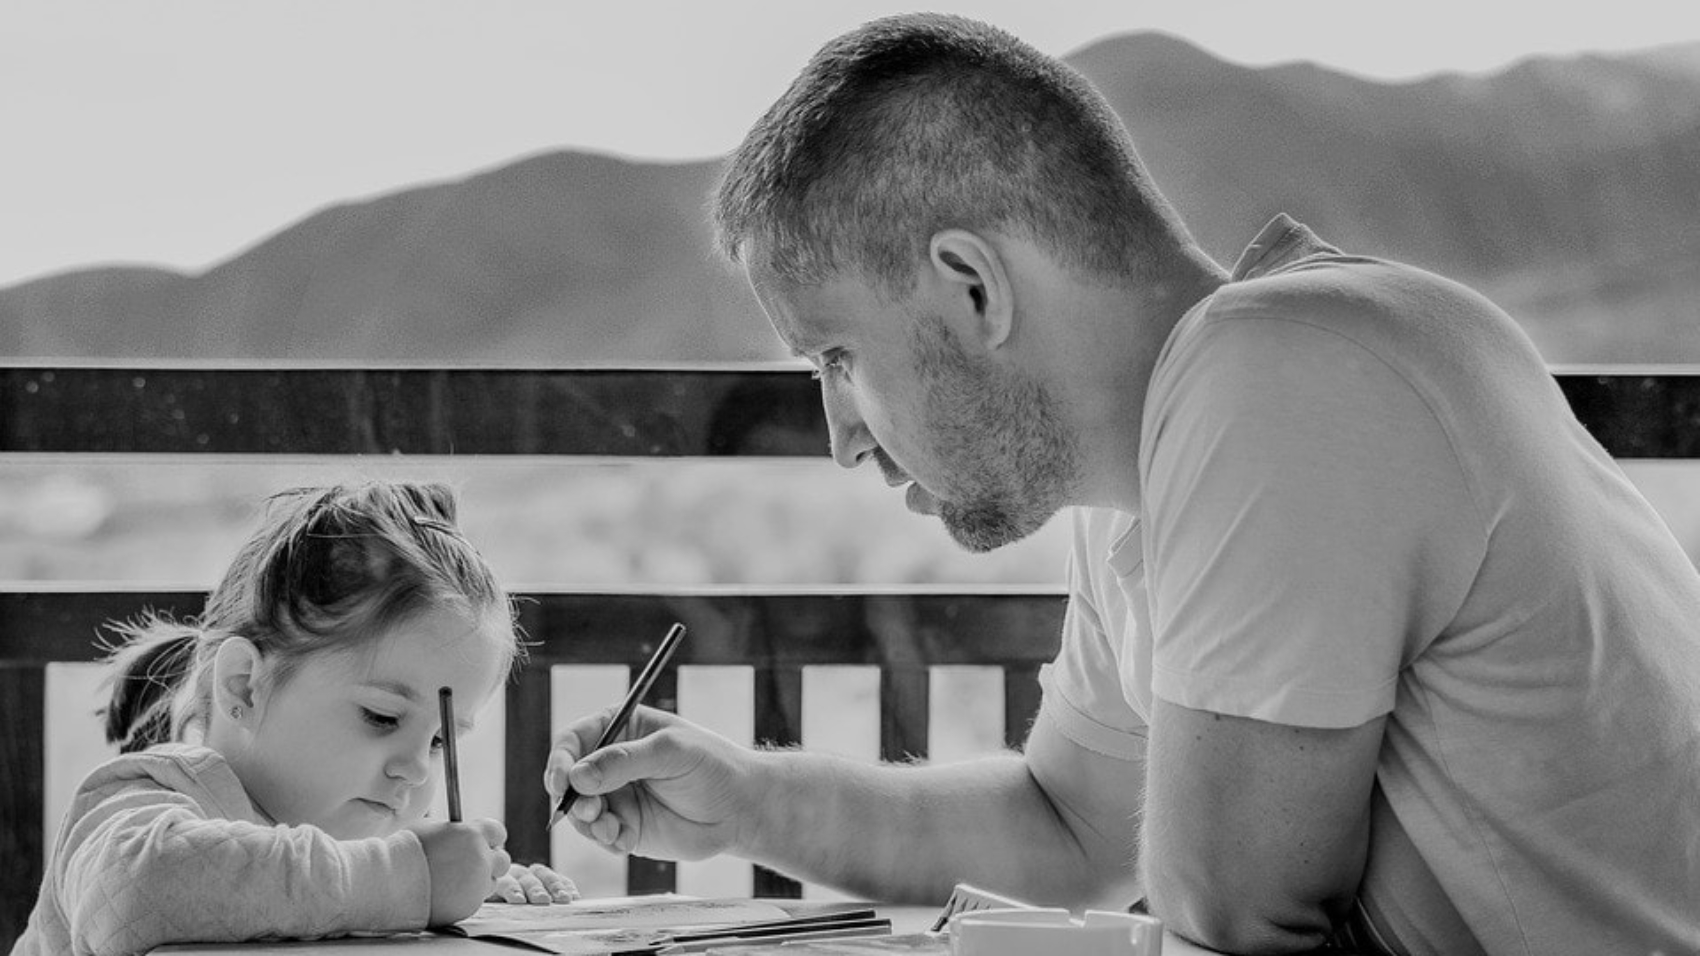 New to Being a Stepdad? 4 Ways to Find Support in Your New Role